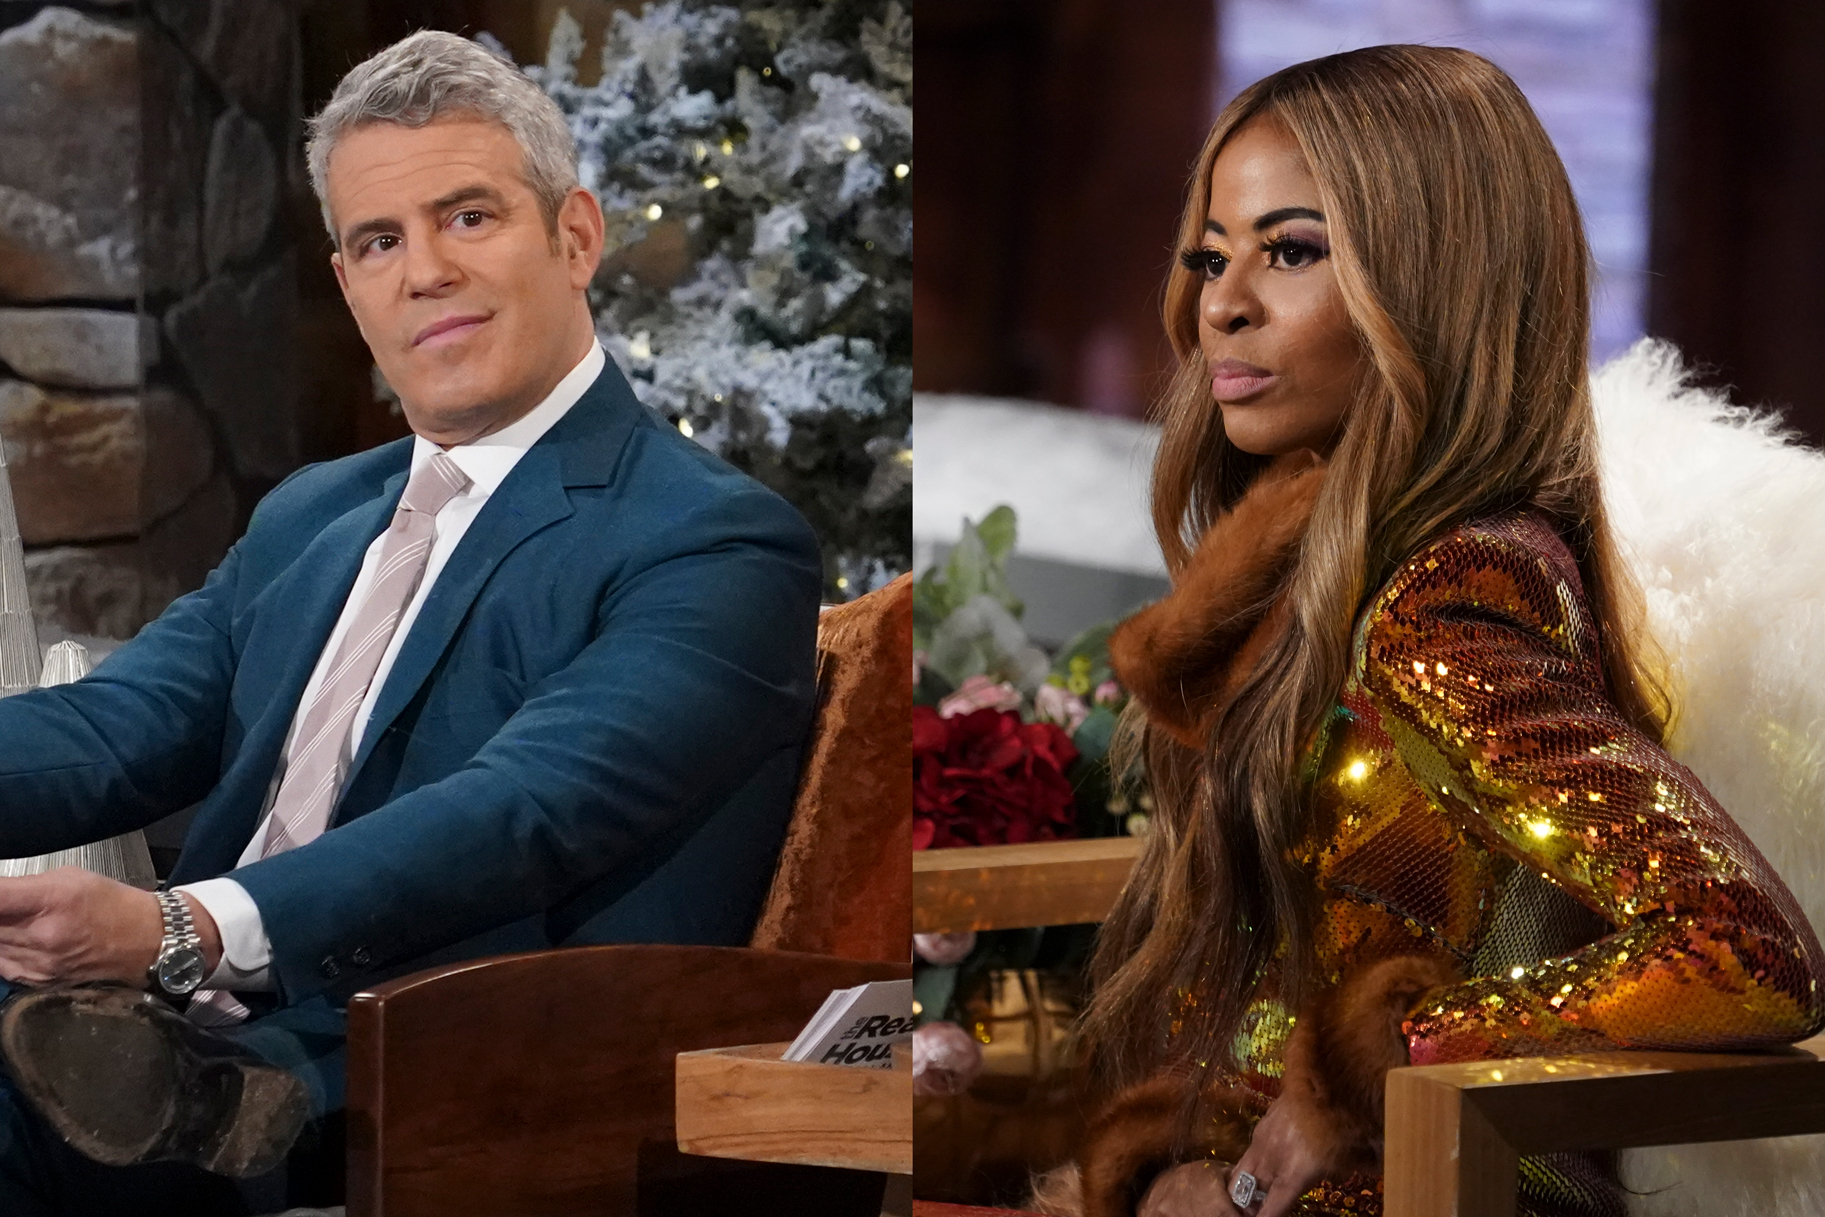 Andy Cohen Mary Cosby Rhoslc